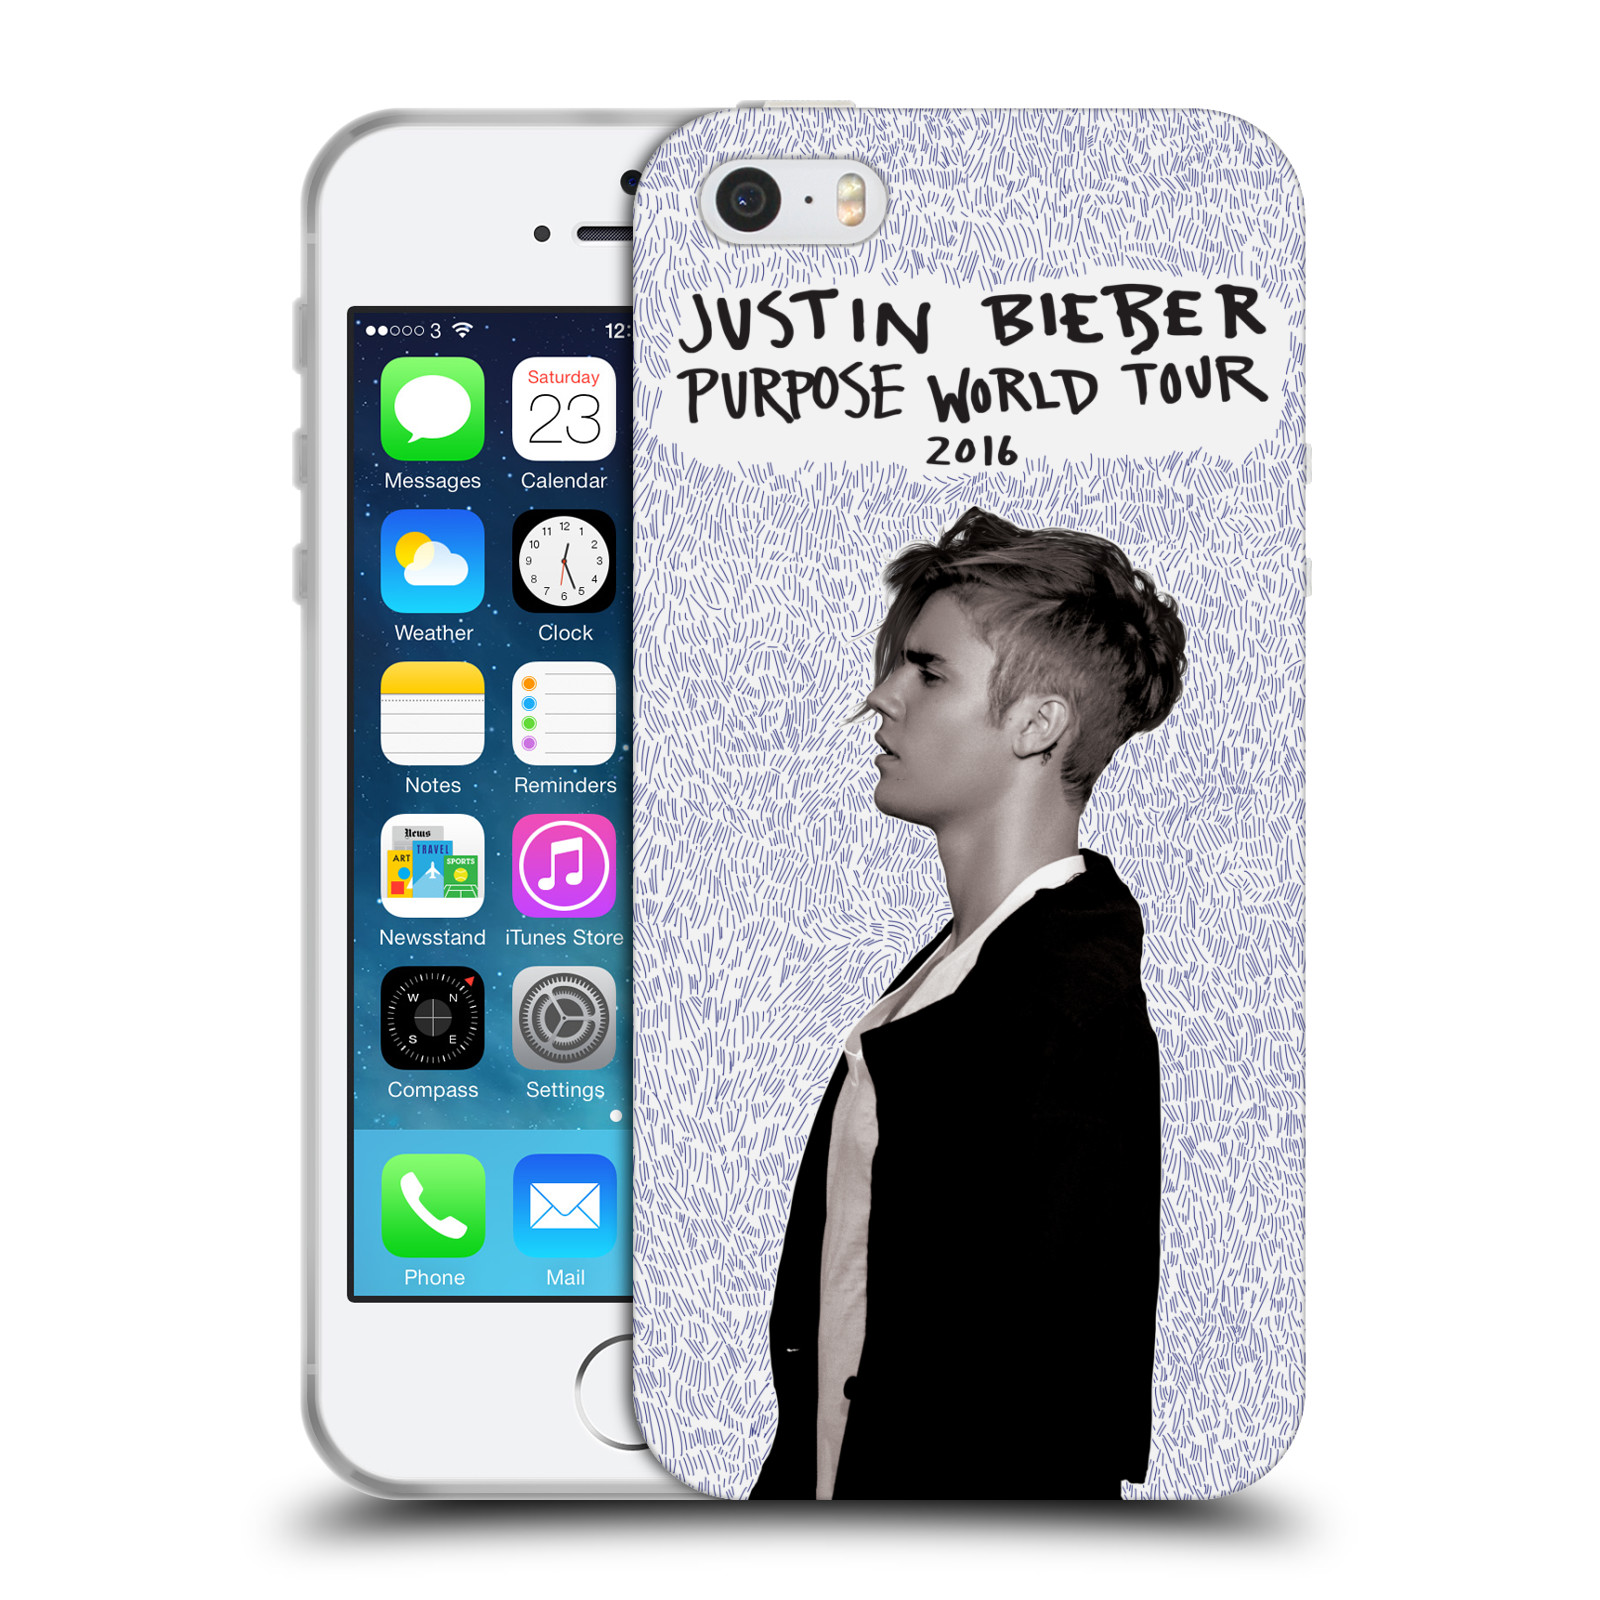 HEAD CASE silikonový obal na mobil Apple Iphone 5 / 5S originální potisk Justin Bieber Purpose world tour